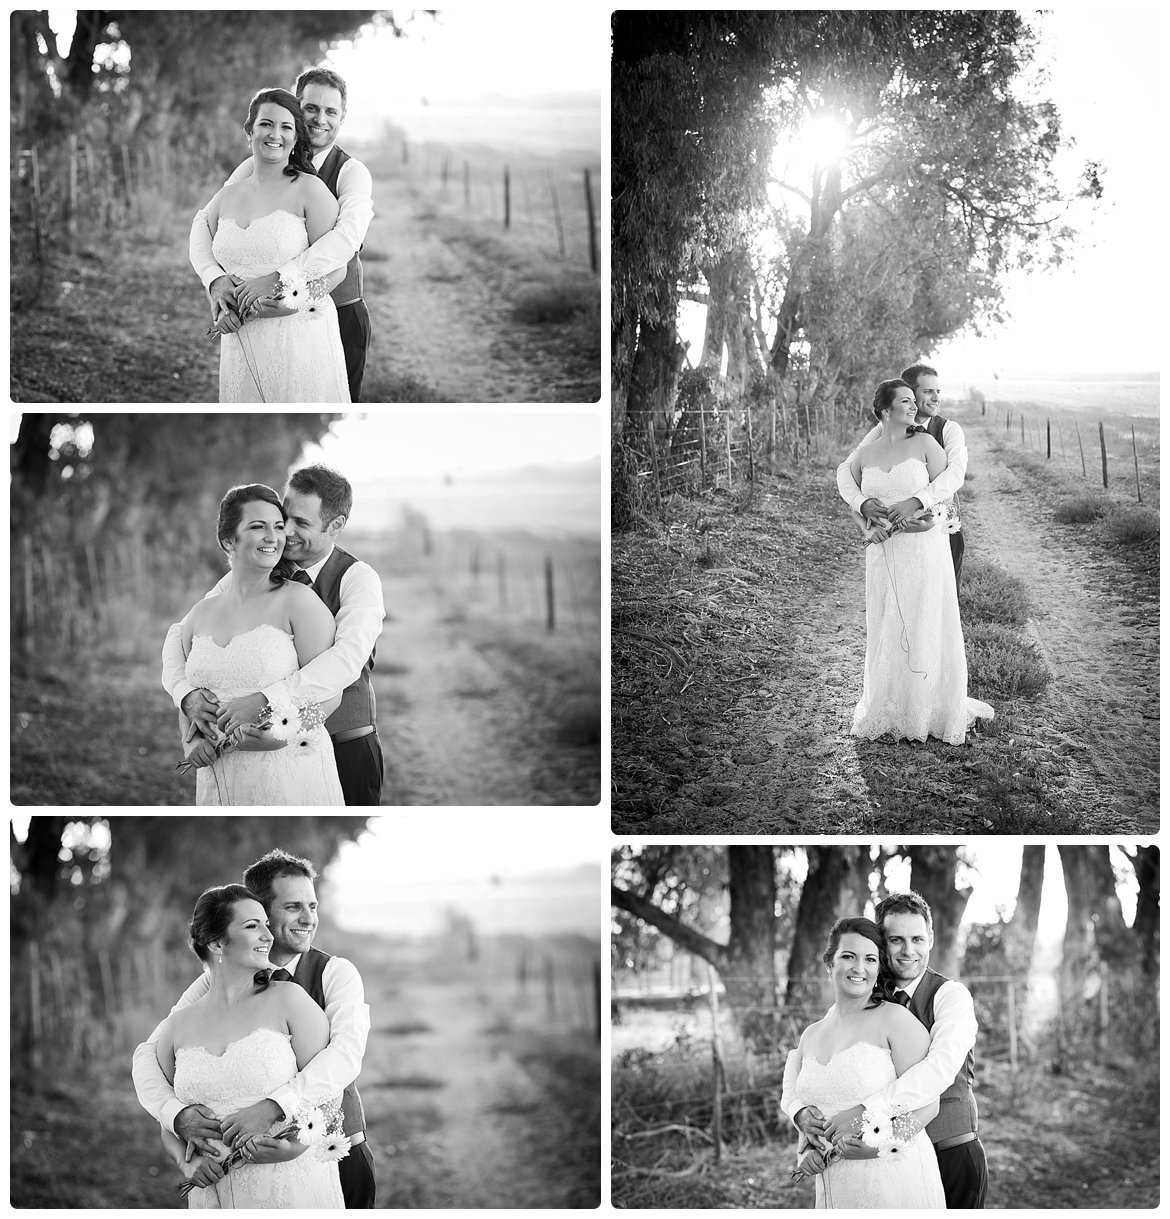 cape-town-wedding-photographer-schaftplaas-langebaan-0030